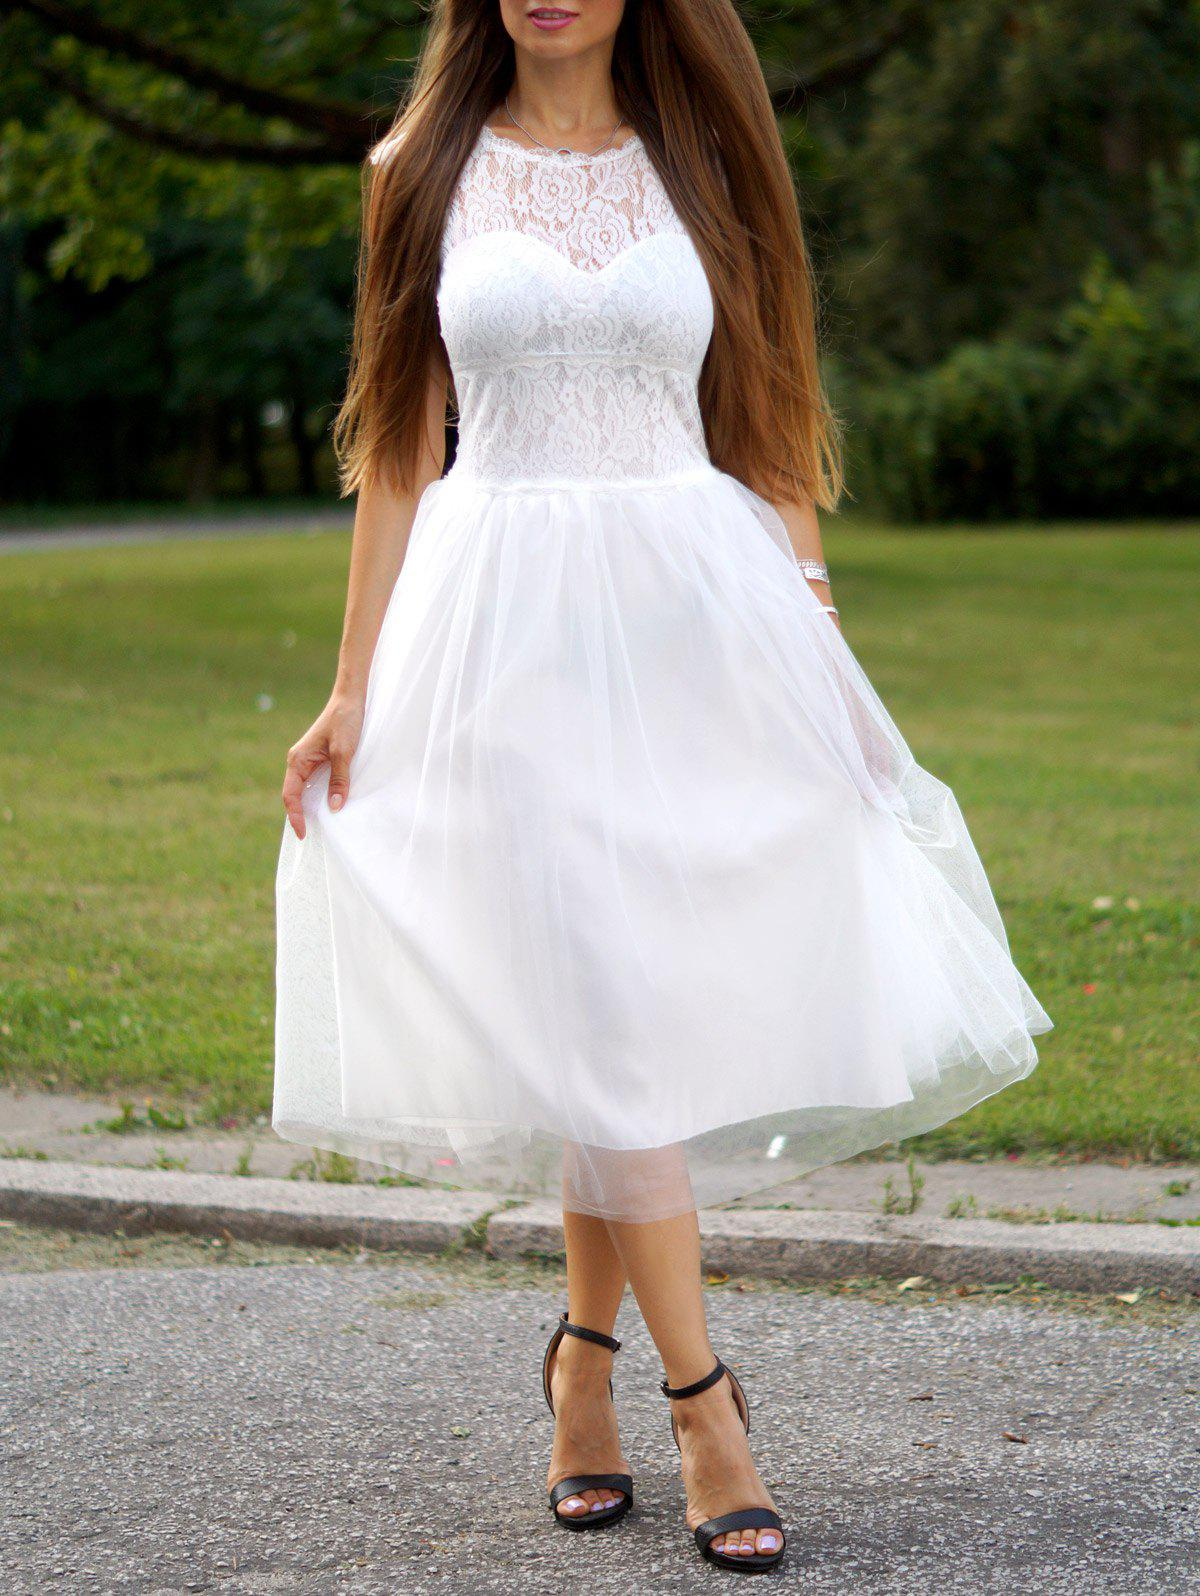 Fashionable Women's Round Neck Short Sleeve Lace Splicing A-Line Dress